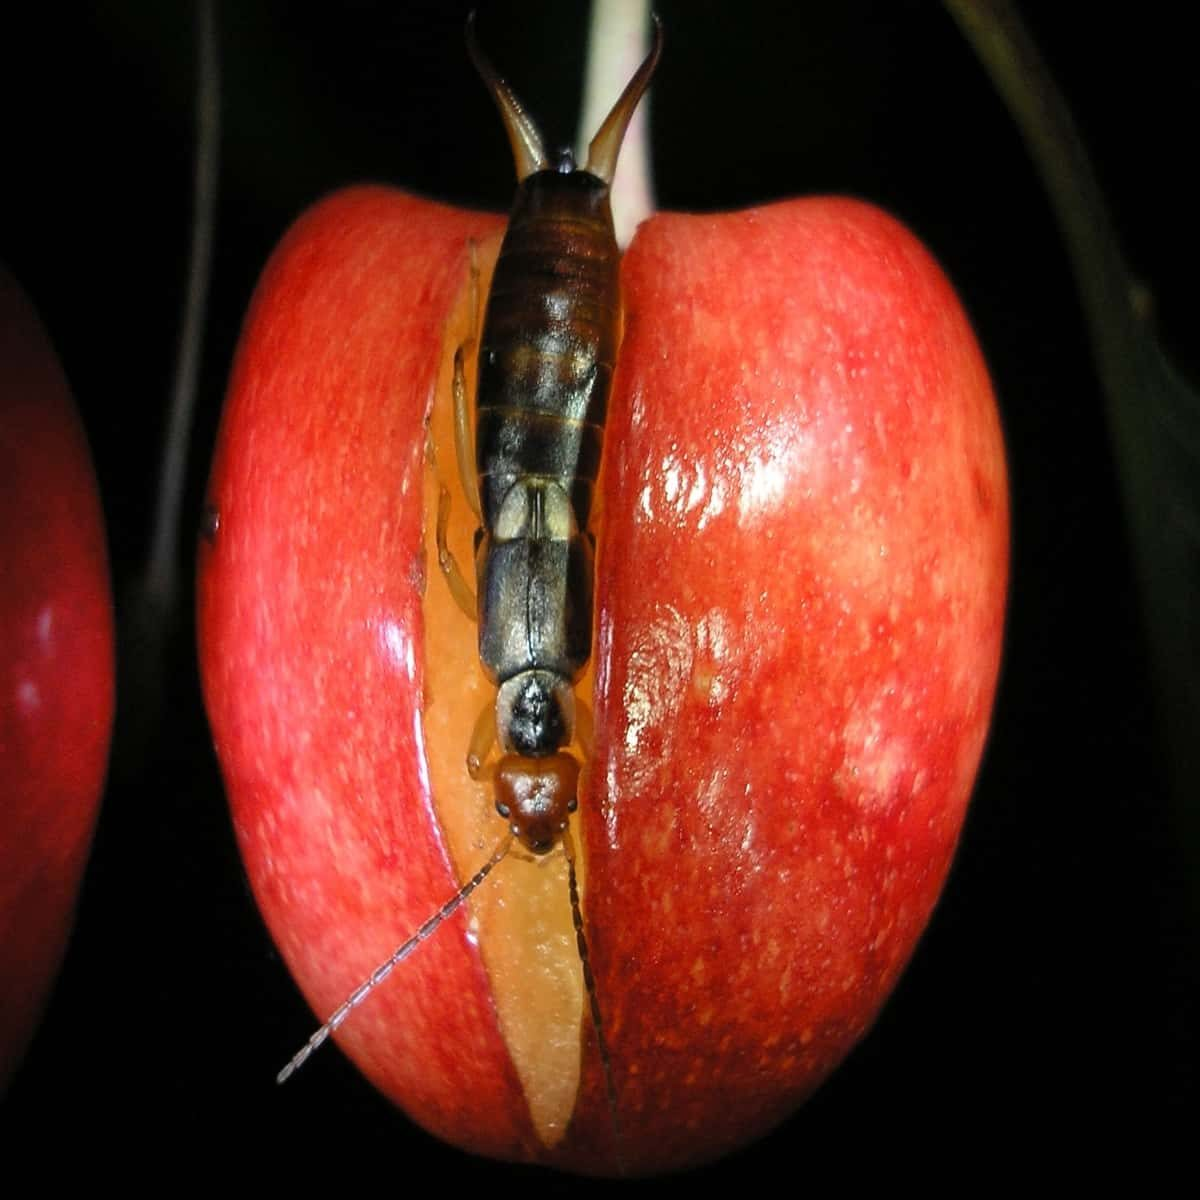 Earwig eating cherry